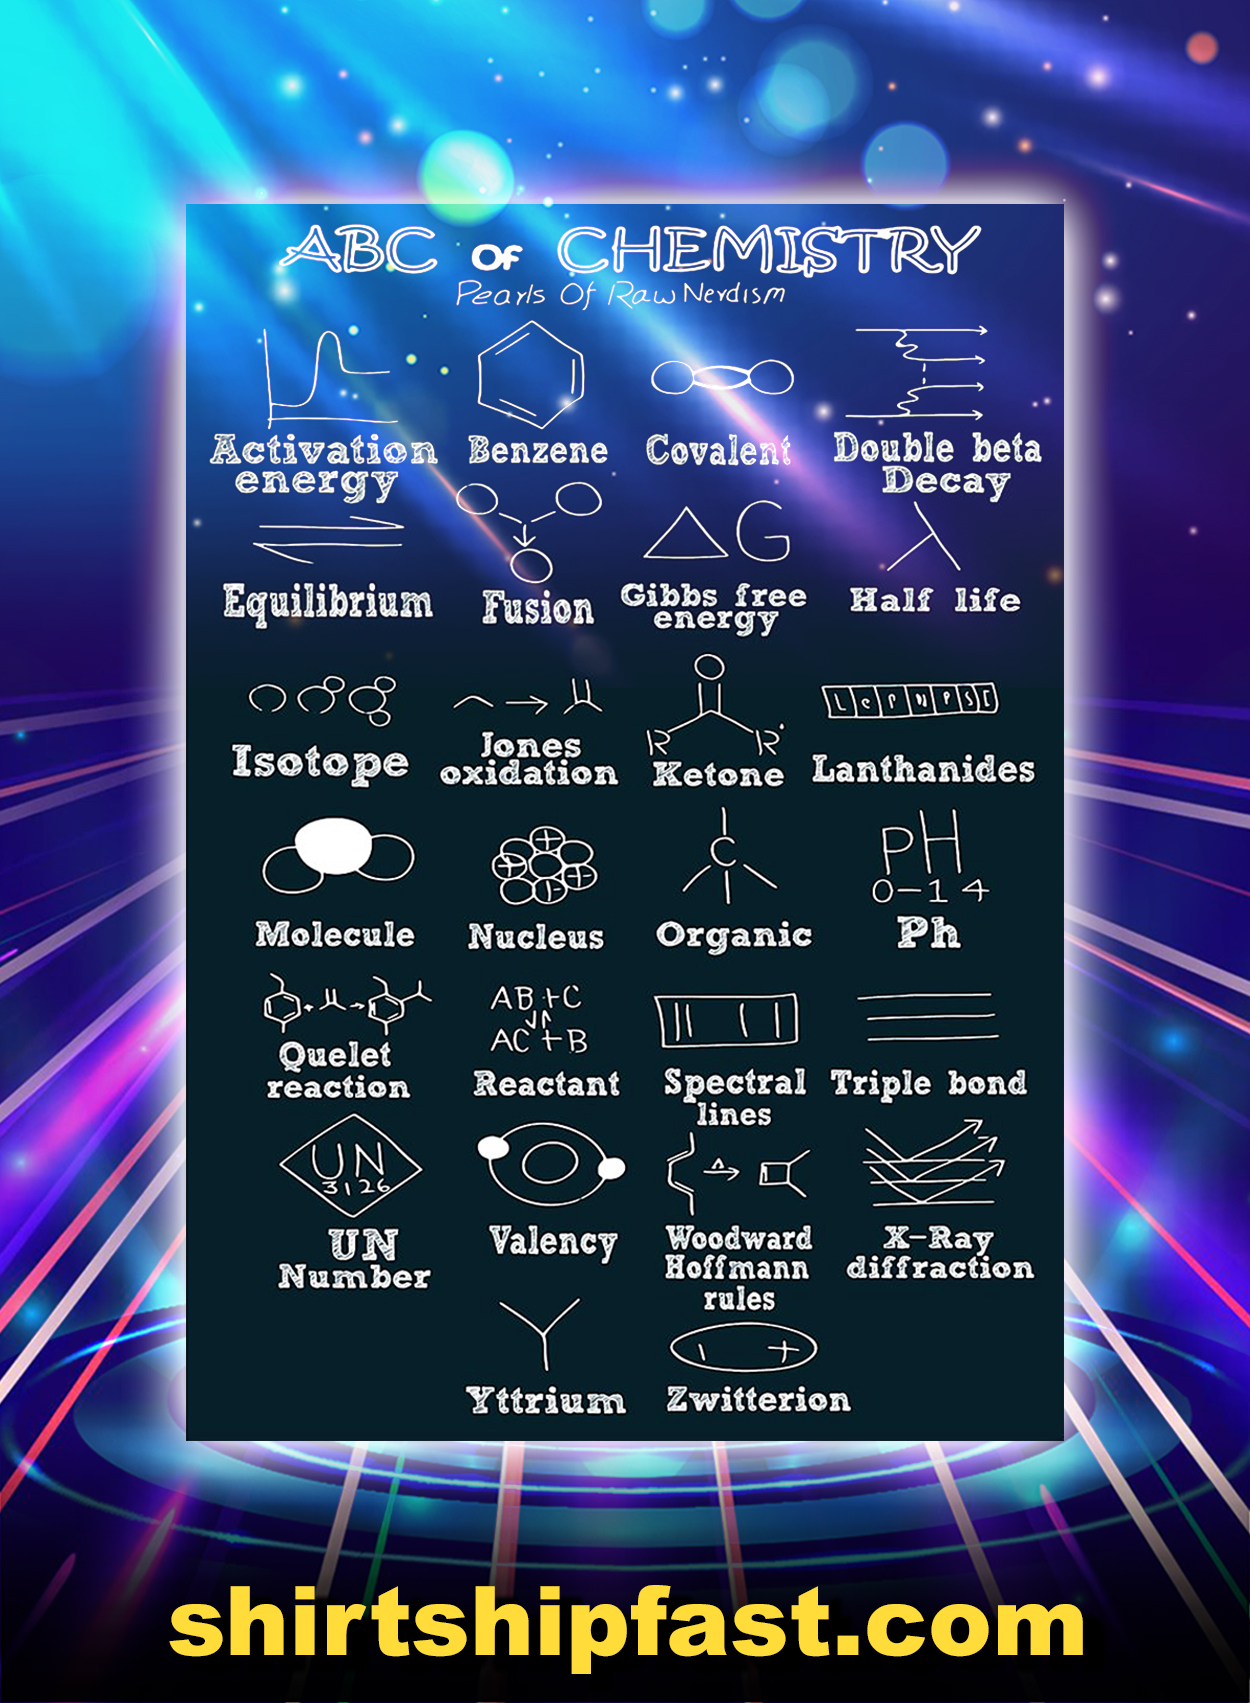 Abc of chemistry poster - A3